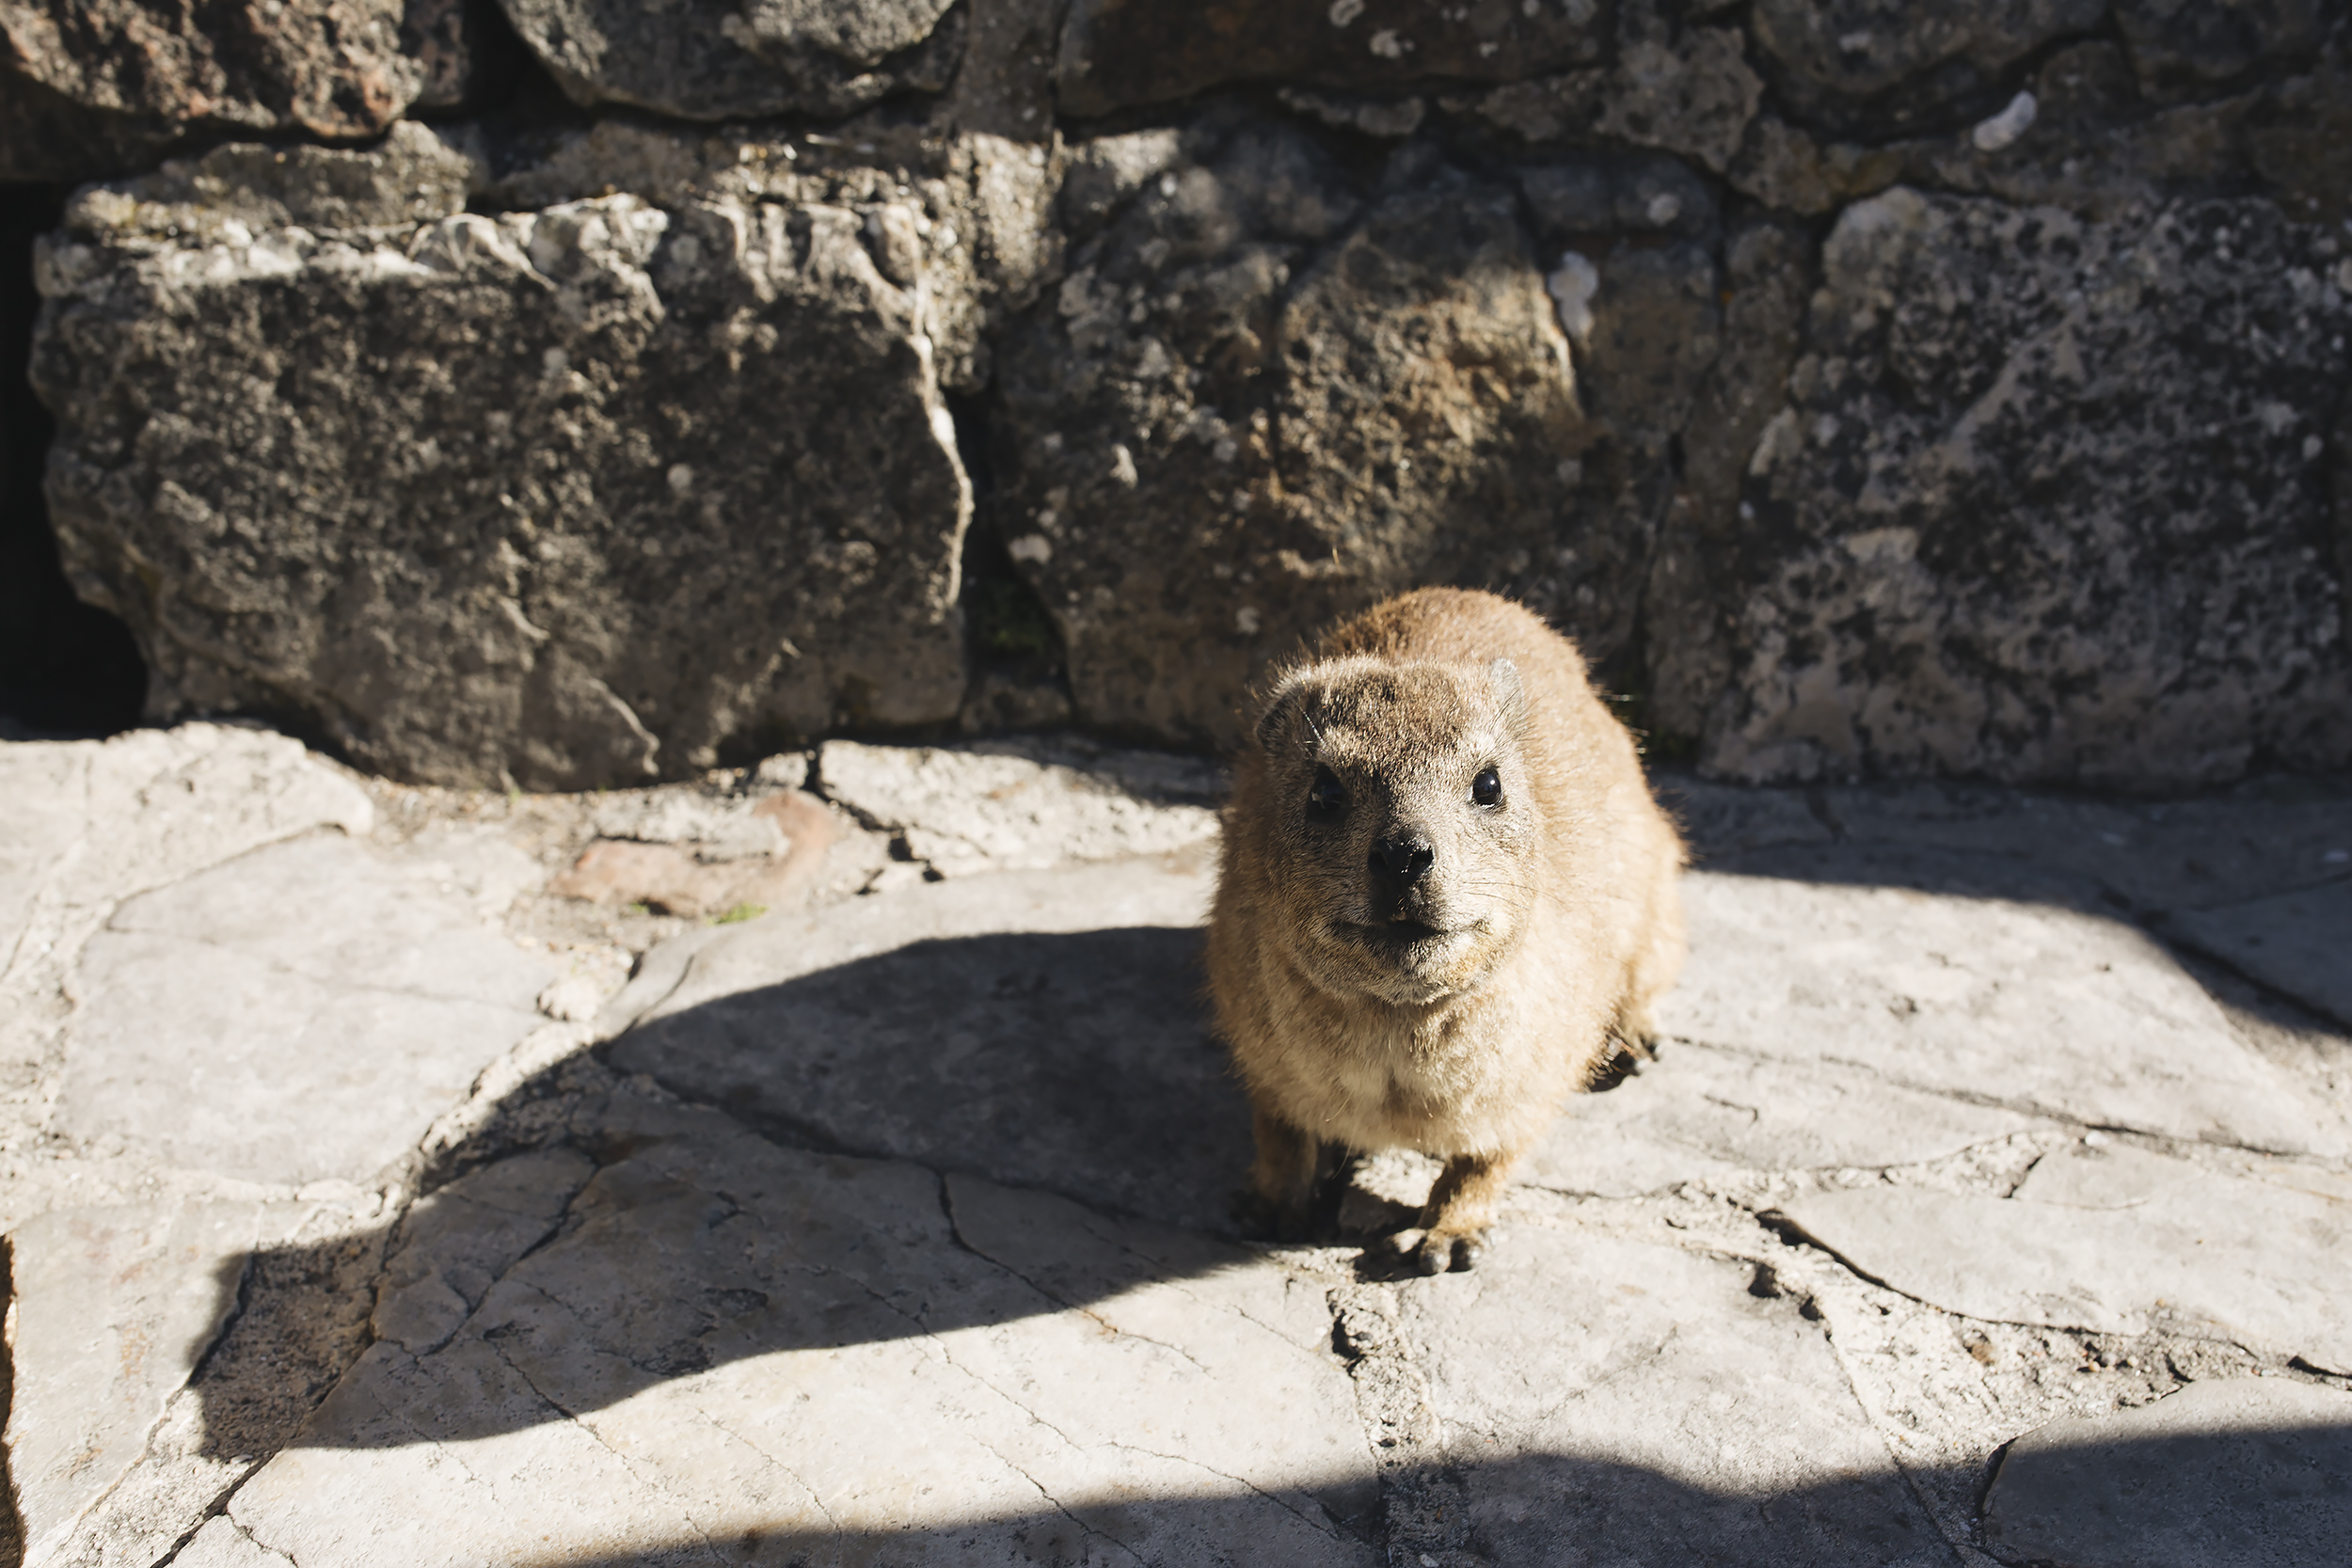 Little furry creatures called Rock Hyrax's